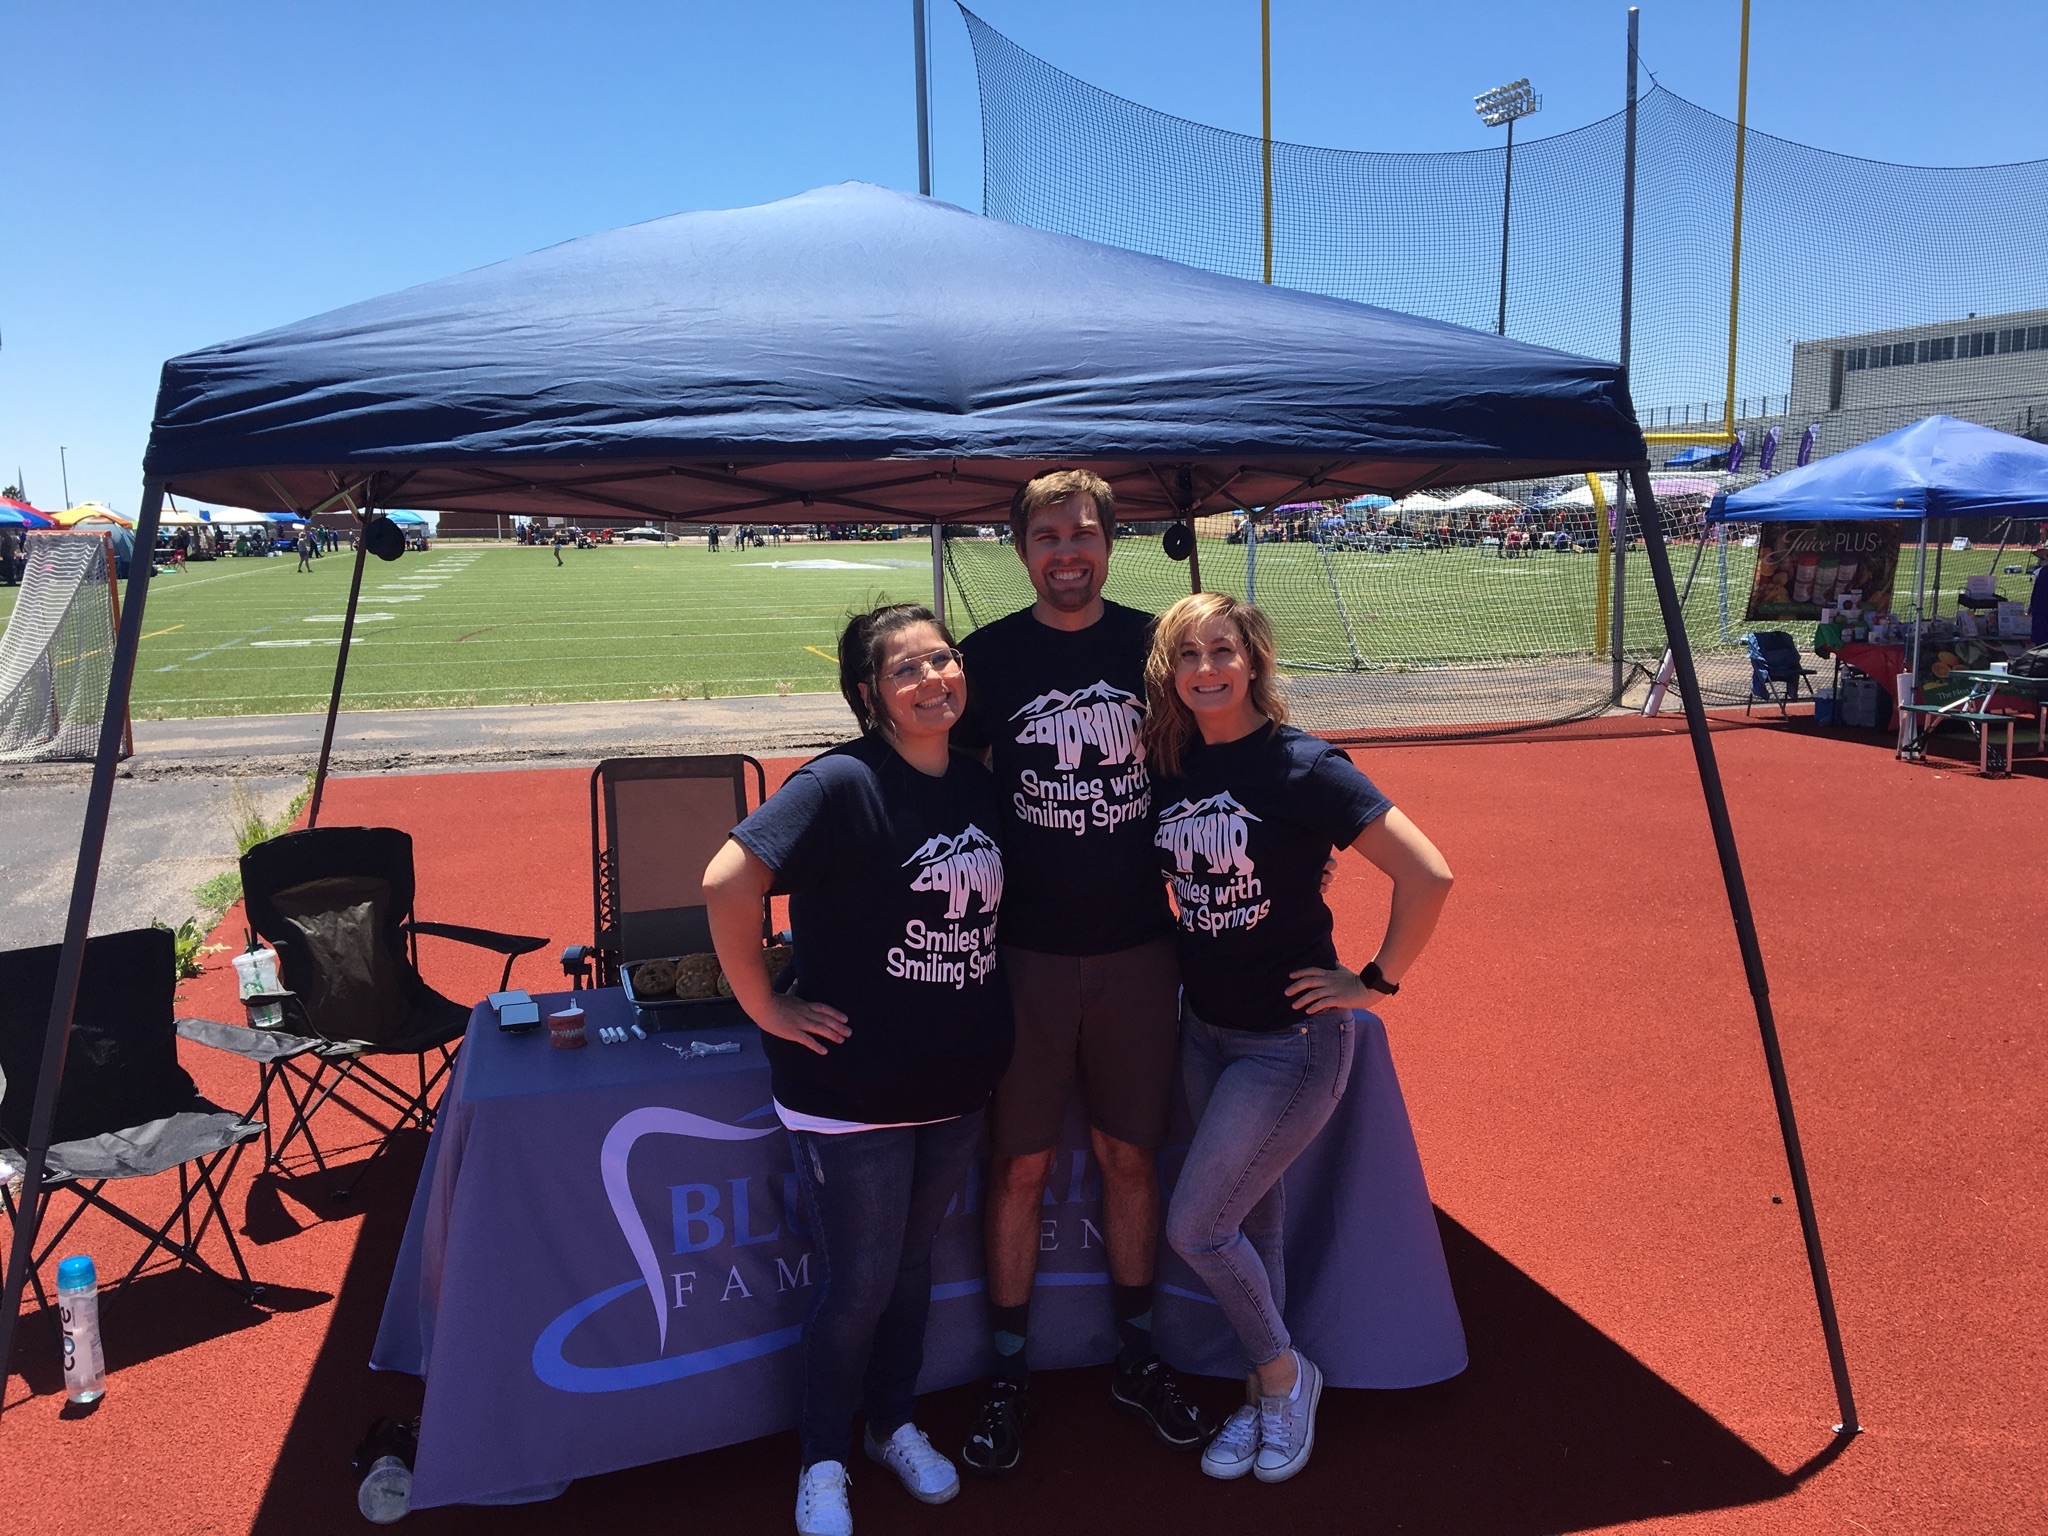 #relayforlife #orthodontics #braces #orthodontist #orthodontics #braces #coloradospringsorthodontist Braces Orthodontist